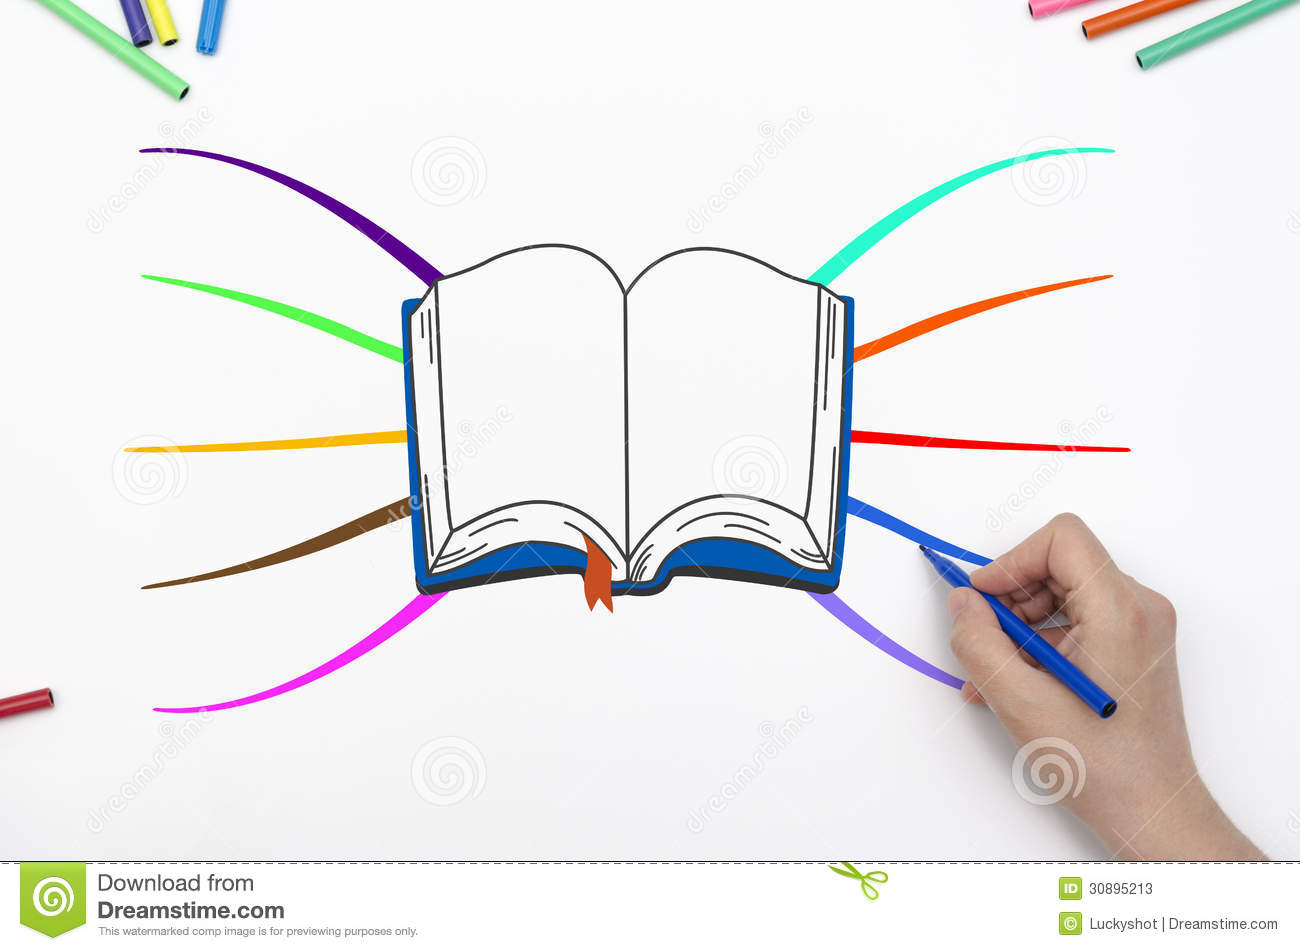 mind map with book and colorful branches. Hand drawing mind